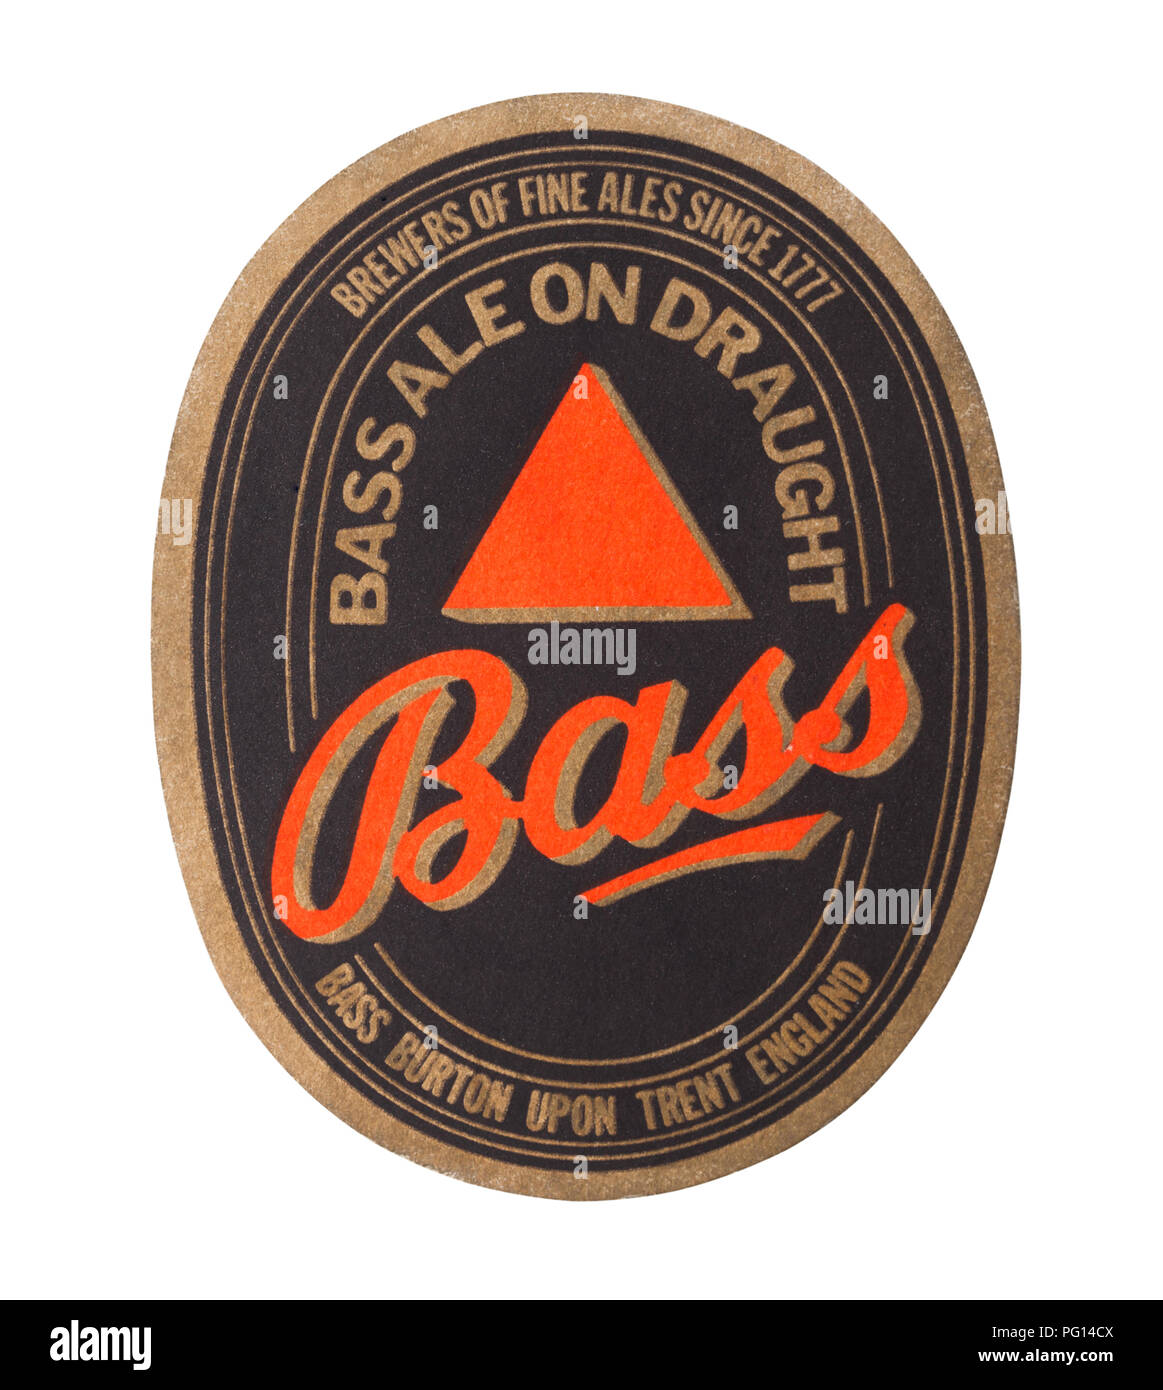 LONDON, UK - AUGUST 22, 2018: Bass ale paper beer beermat coaster isolated on white background. - Stock Image